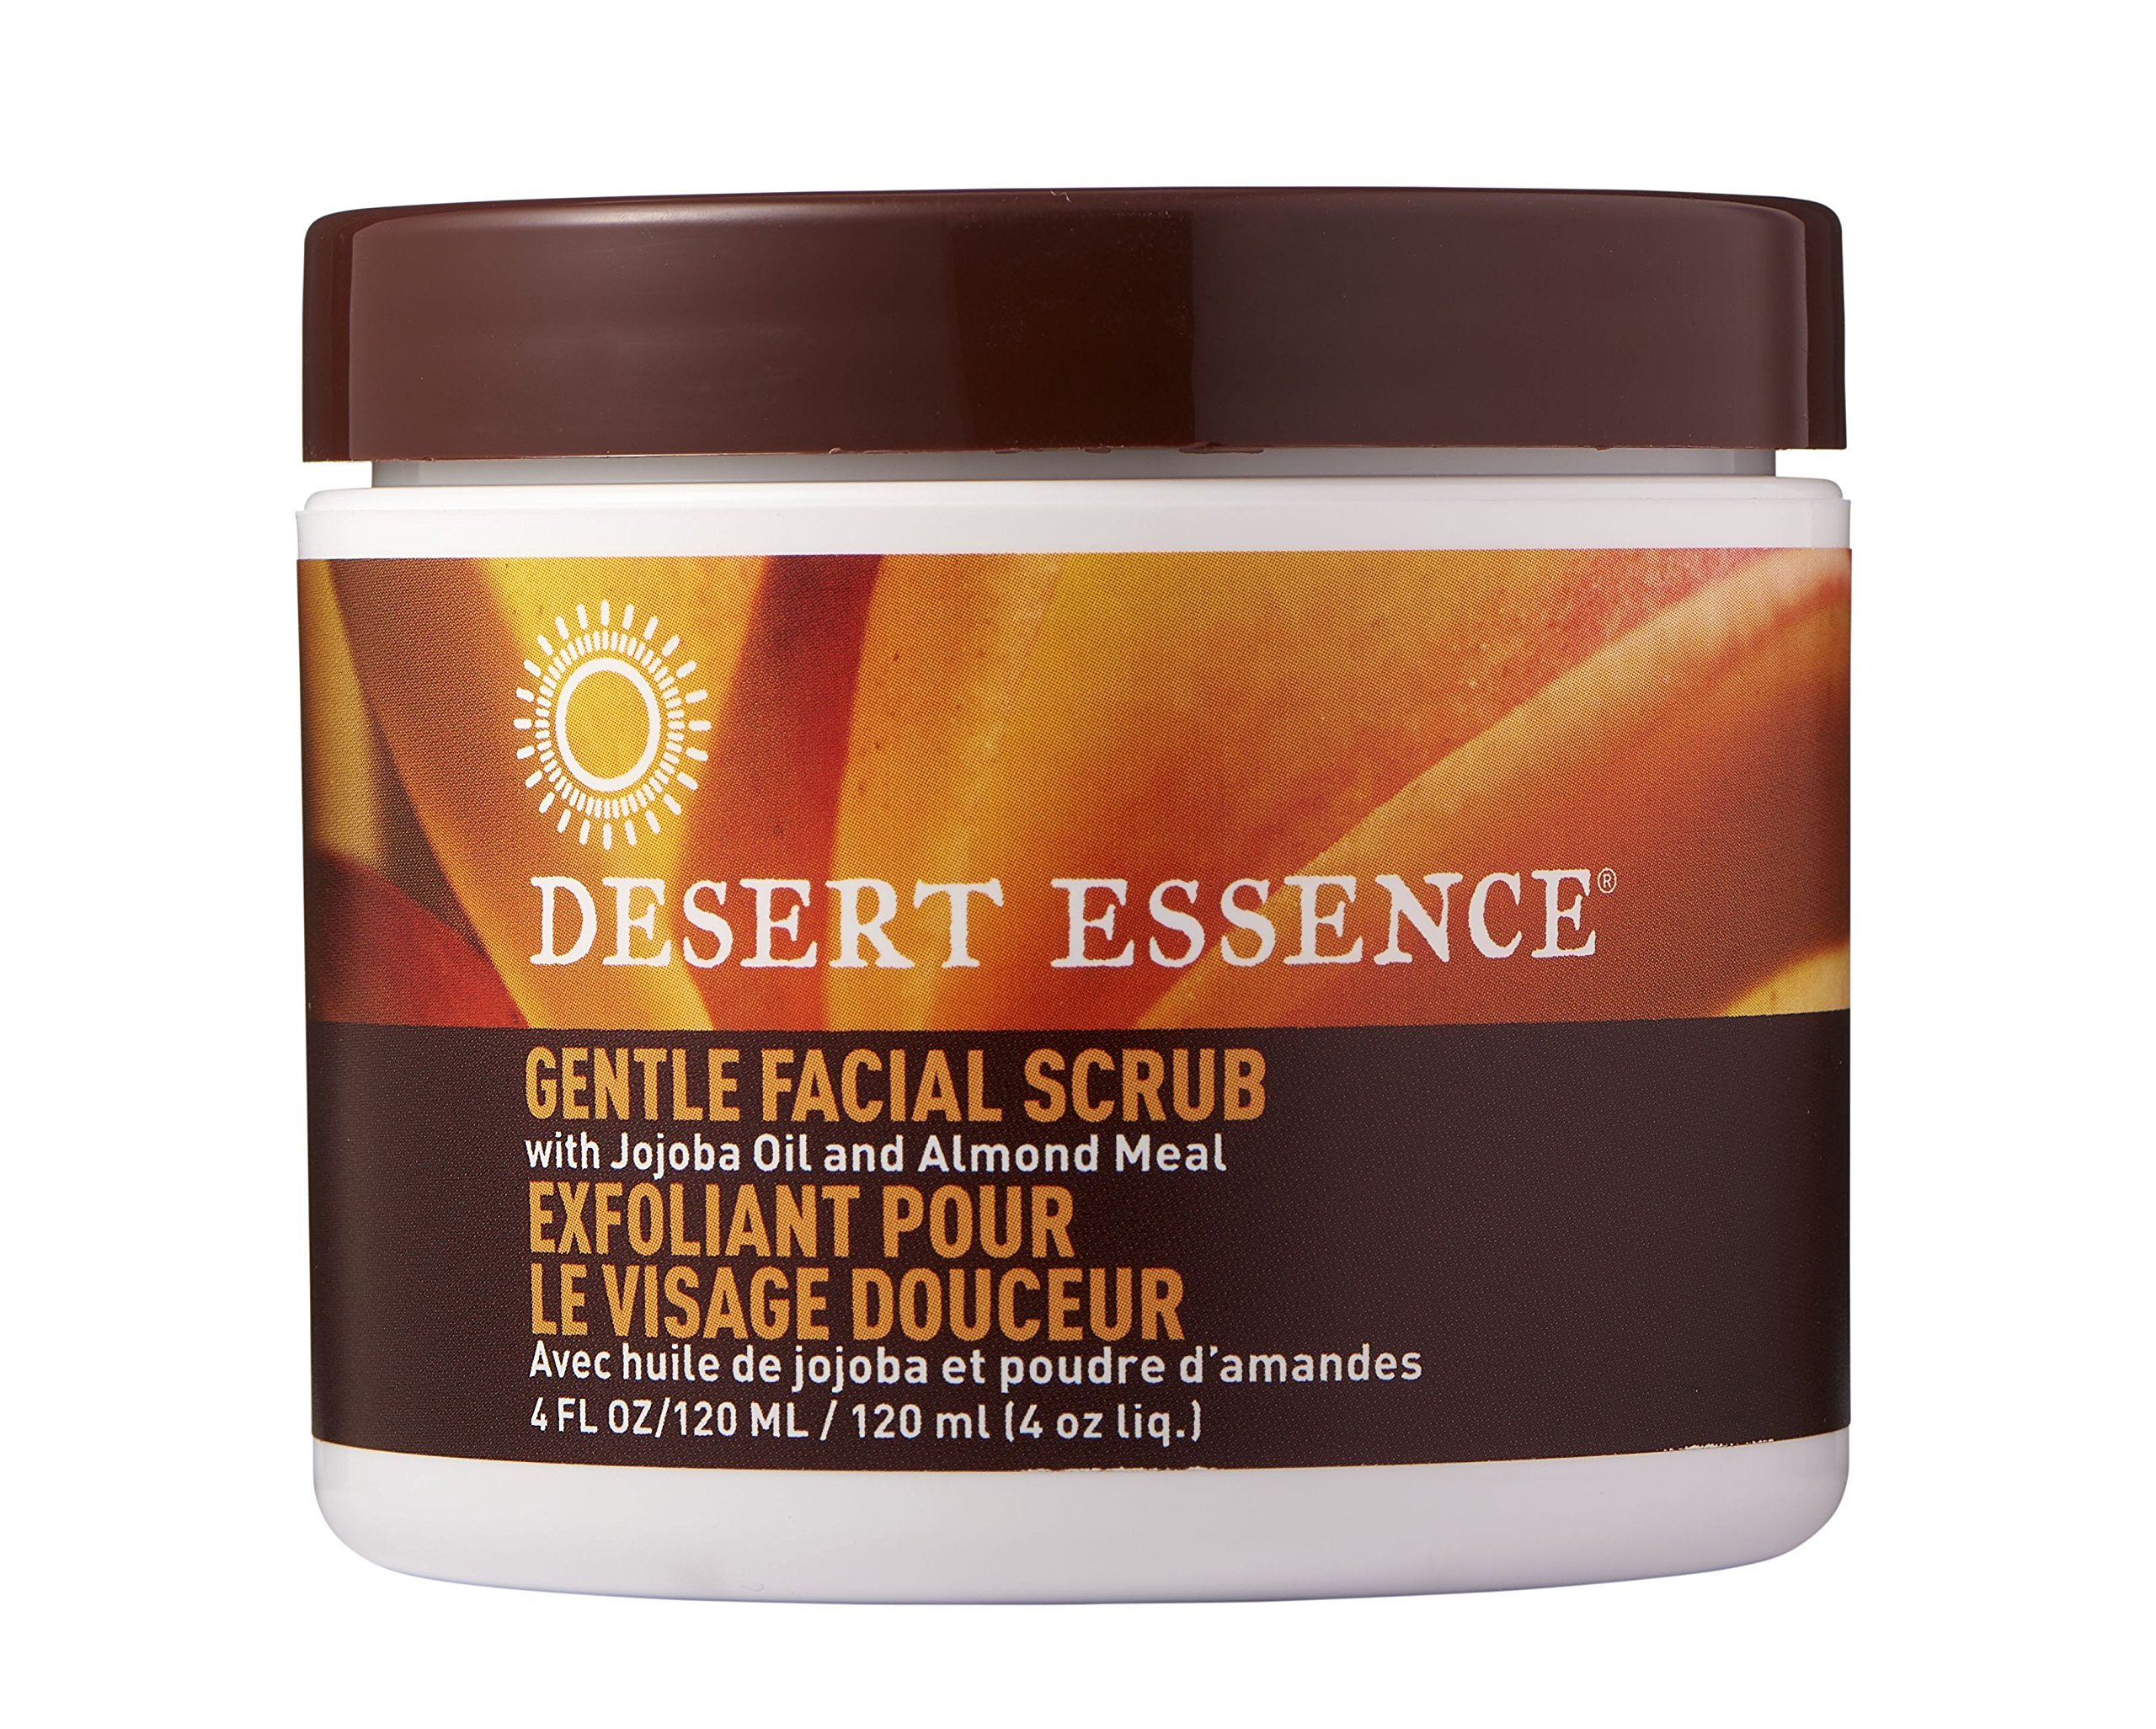 This Desert essence facial moisturizer recommend